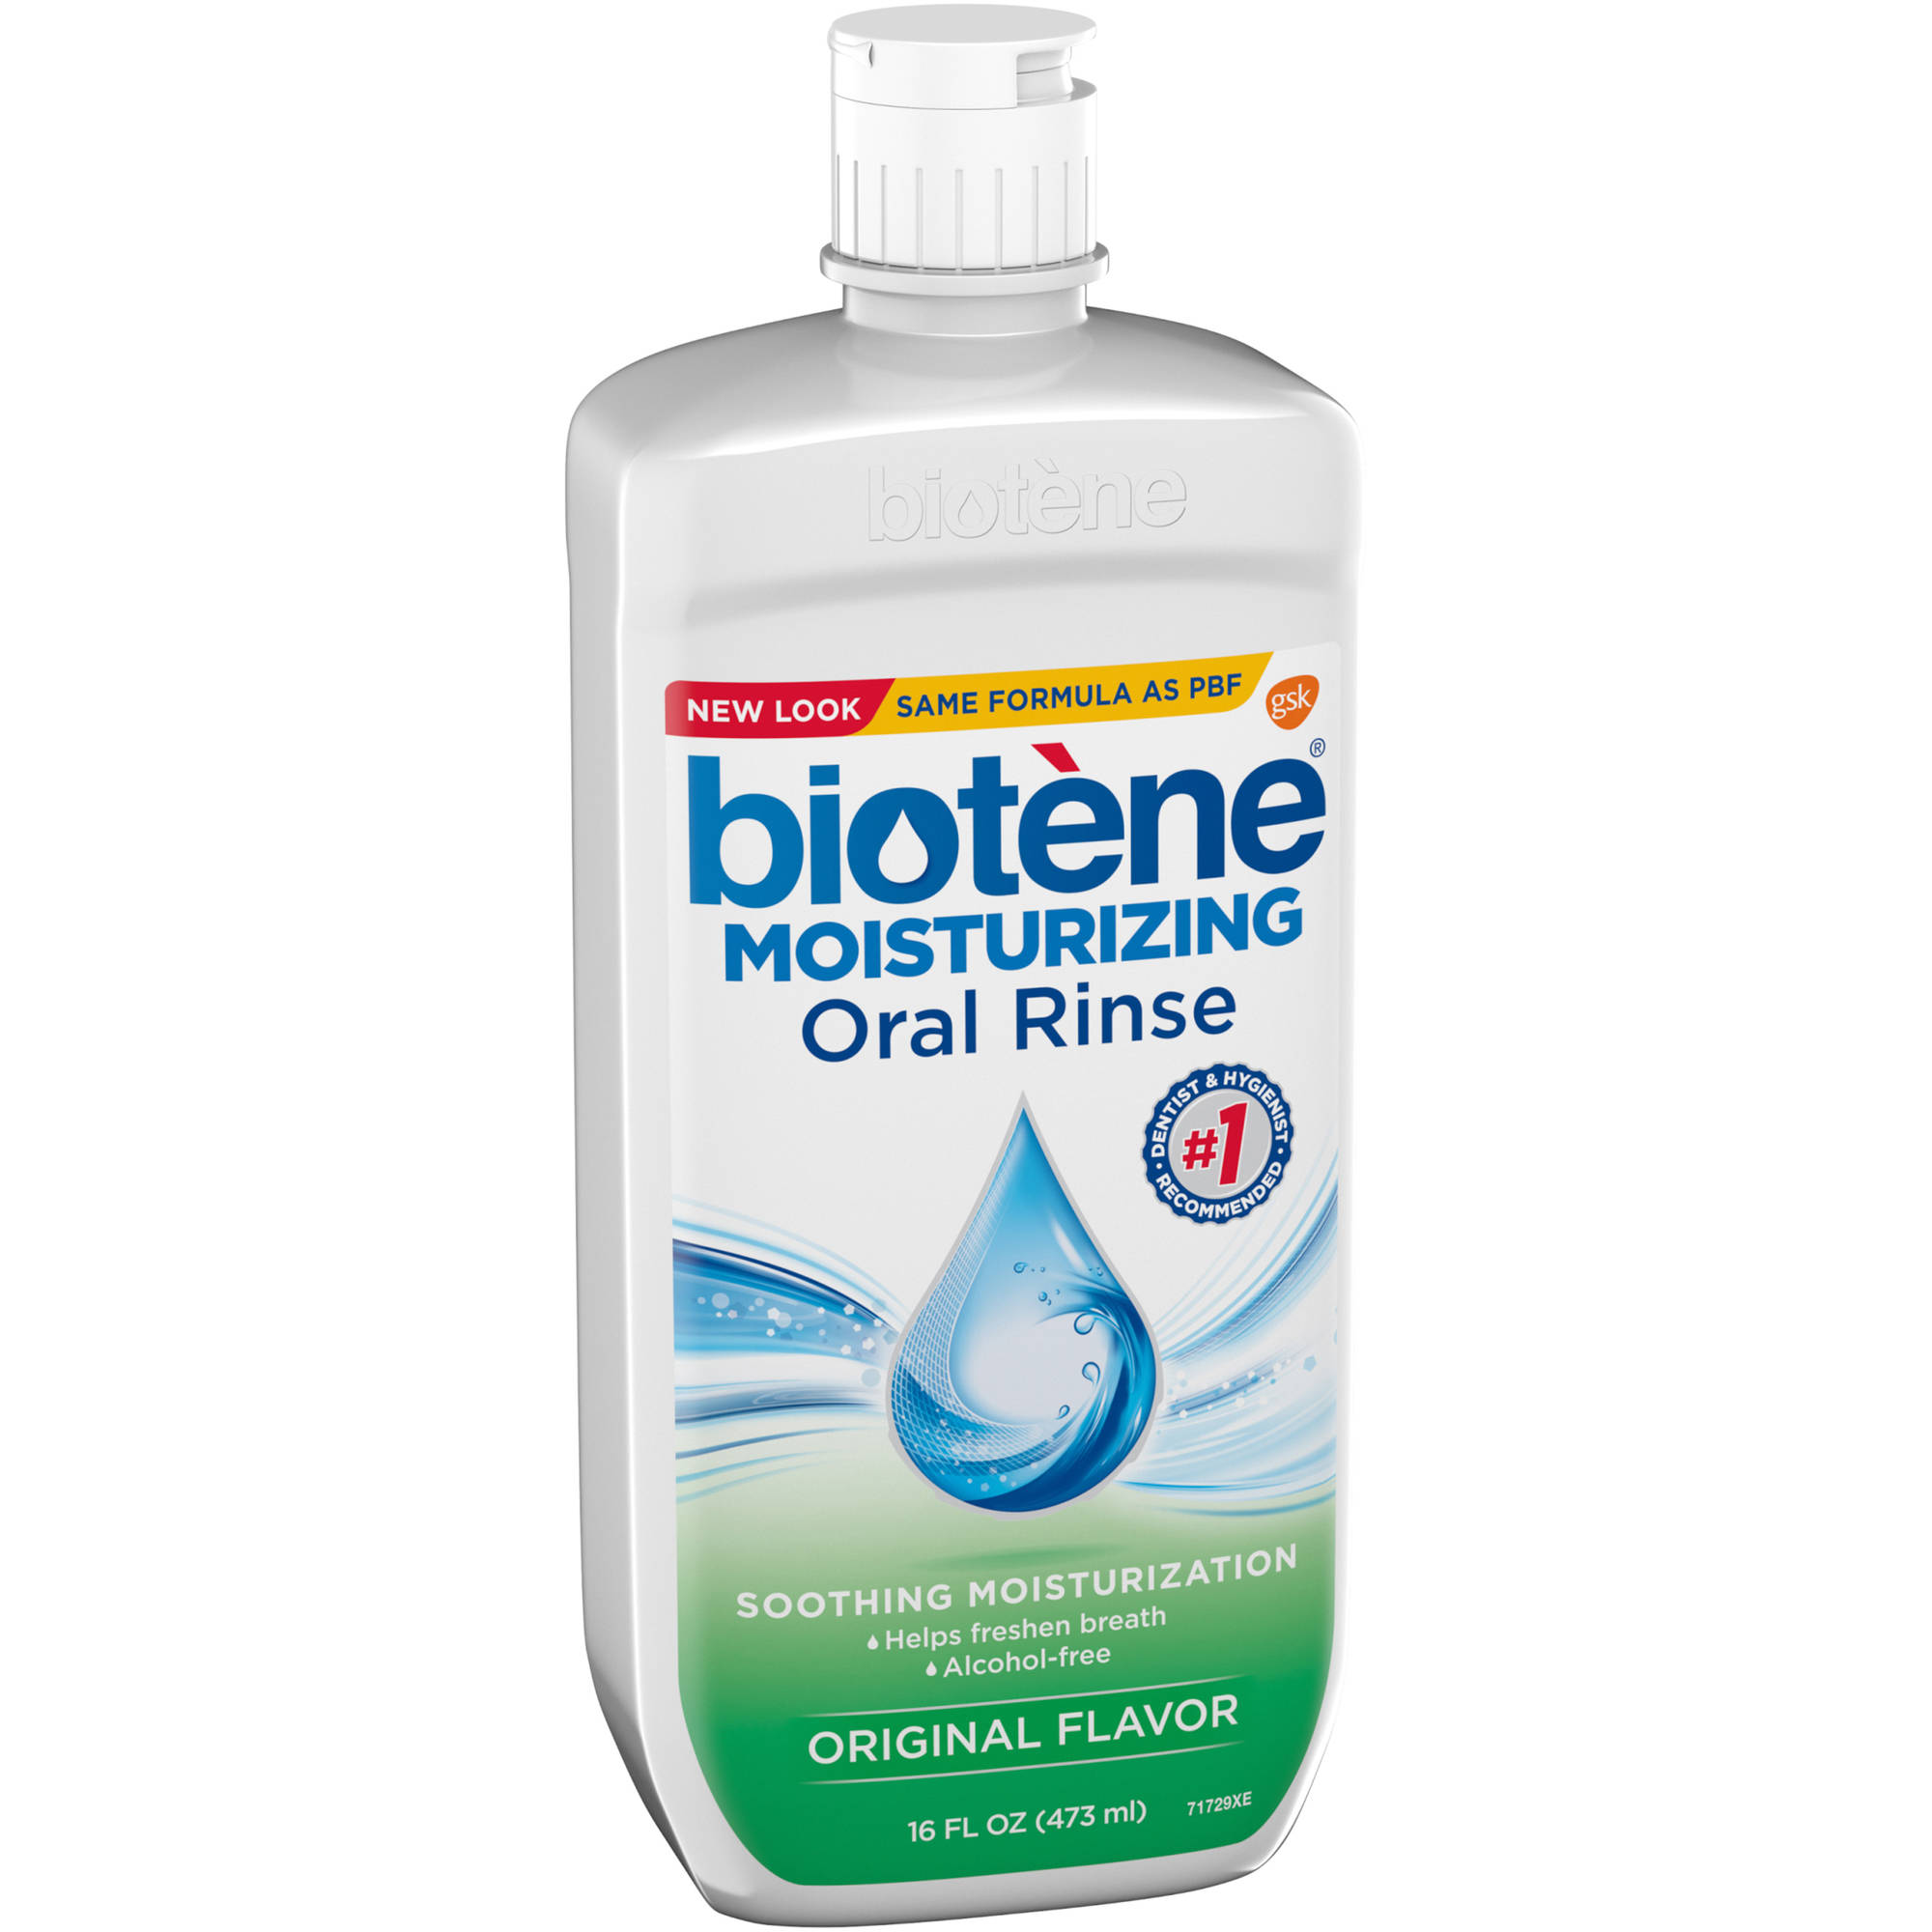 Biotène® Moisturizing Original Flavor Oral Rinse 16 fl. oz. Bottle